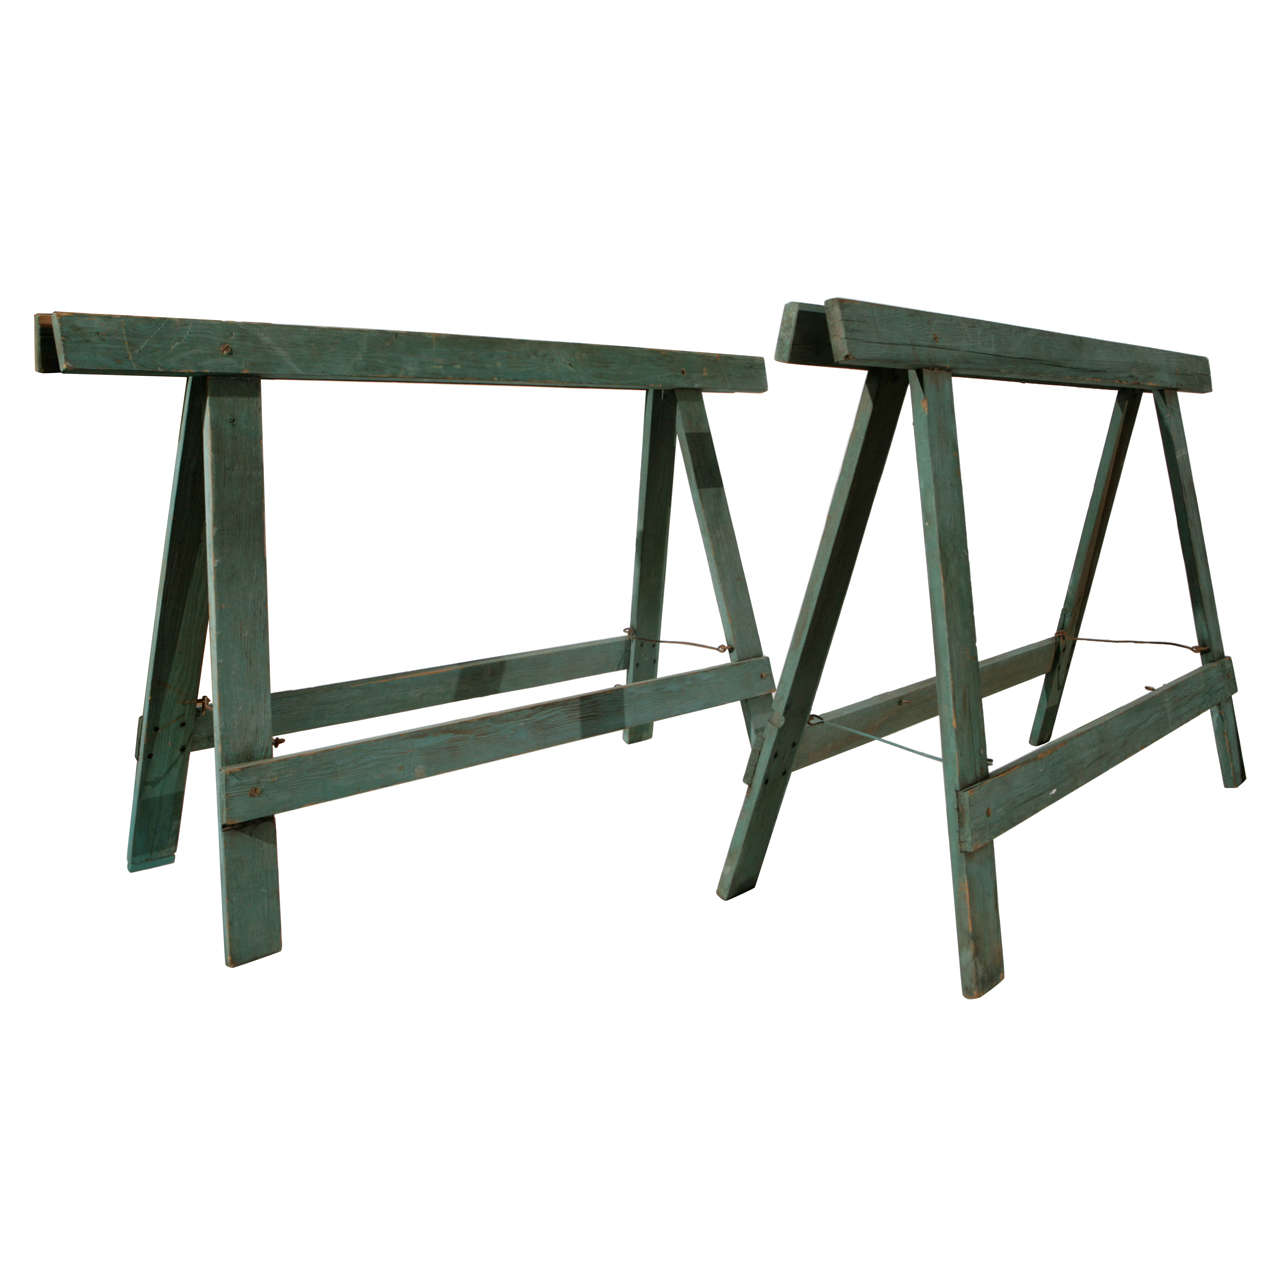 1940s industrial sawhorse work table legs at 1stdibs Sawhorse desk legs